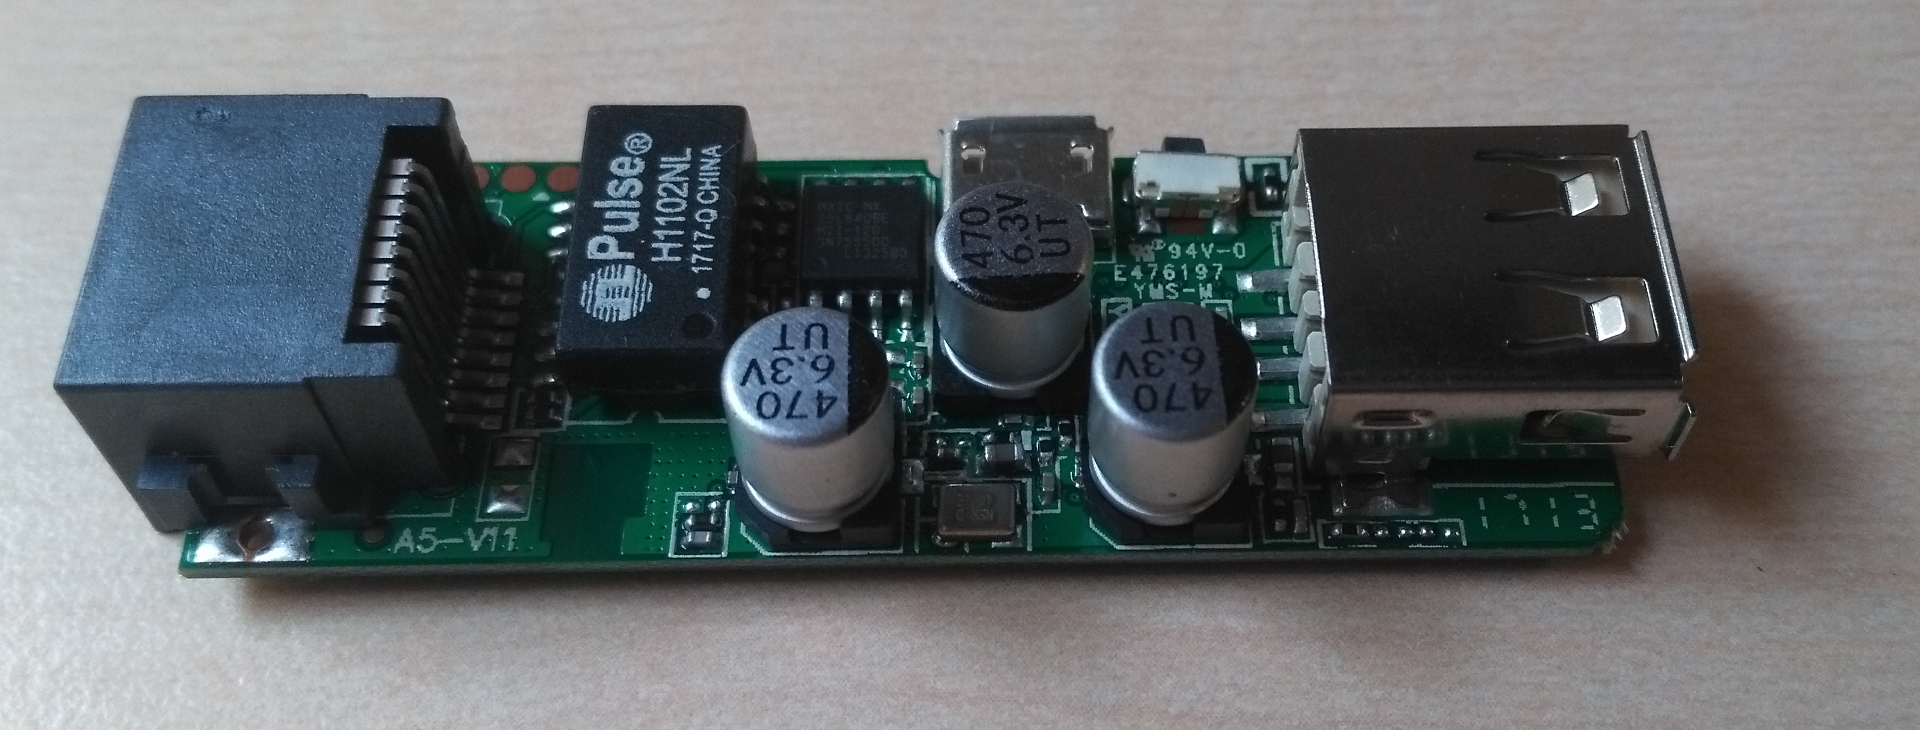 Analysis of Mini 3G/4G WiFi Wireless Router (A5-V11) – NM